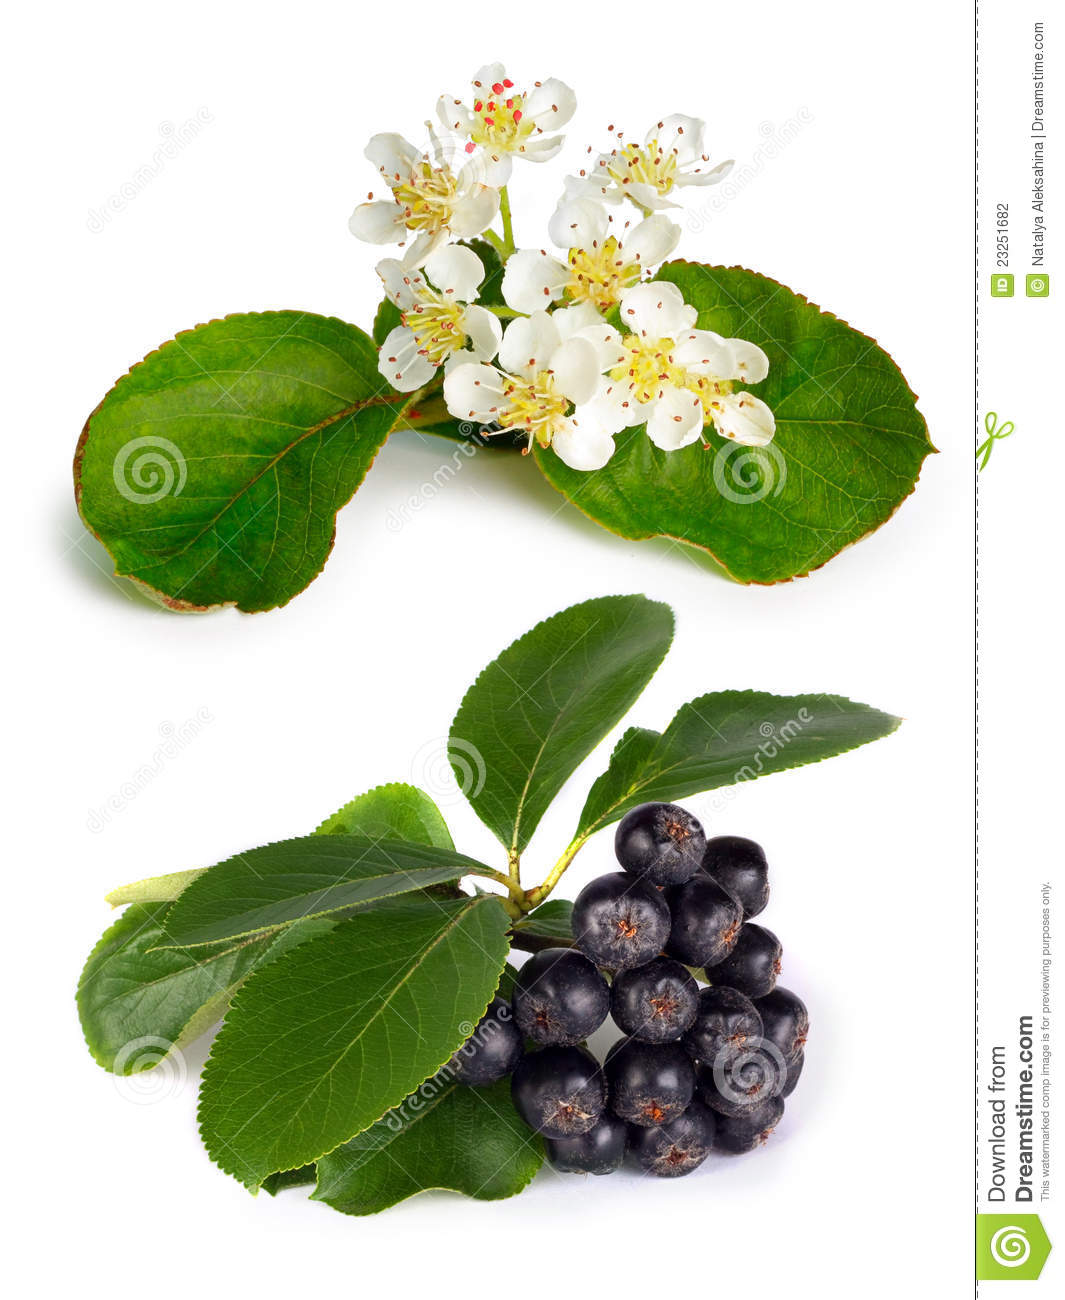 black chokeberry aronia melanocarpa stock photo image. Black Bedroom Furniture Sets. Home Design Ideas